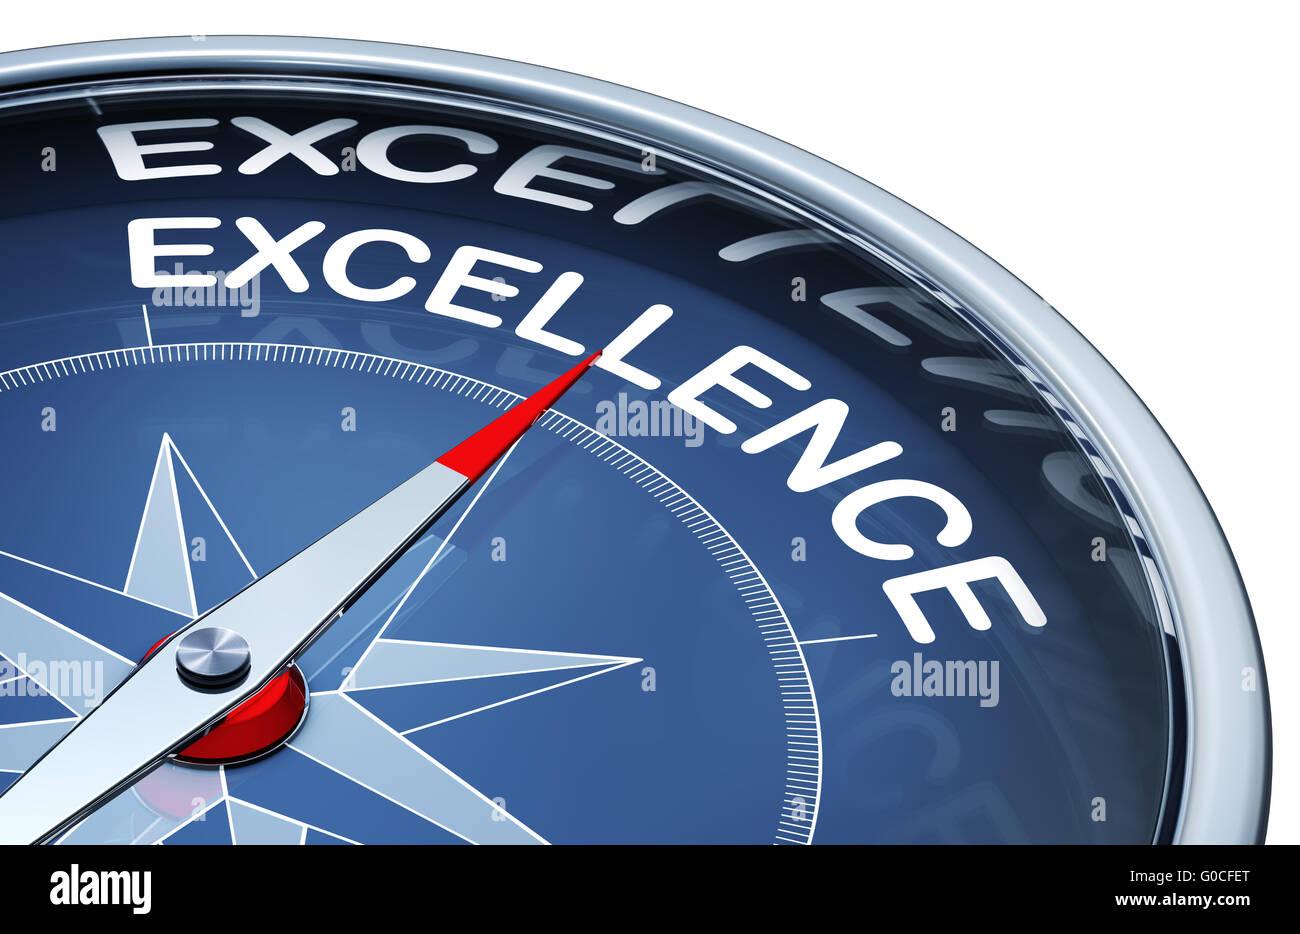 excellence - Stock Image